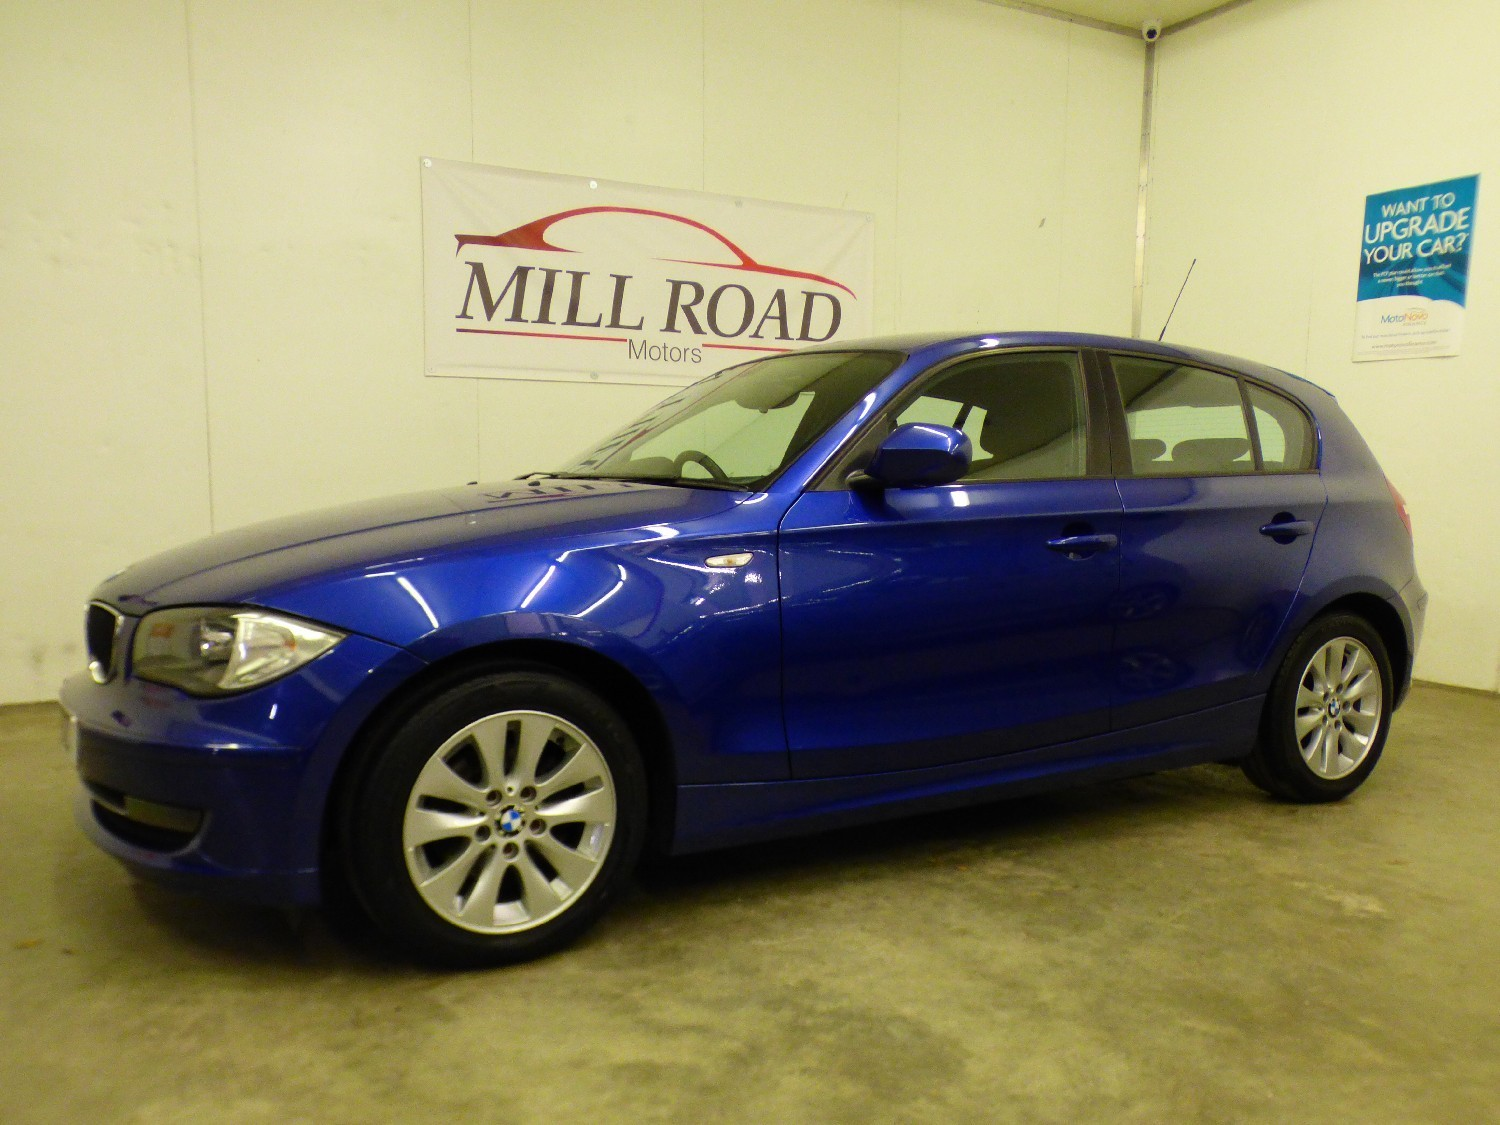 used bmw 1 series in barnstaple devon mill road motors barnstaple devon mill road motors